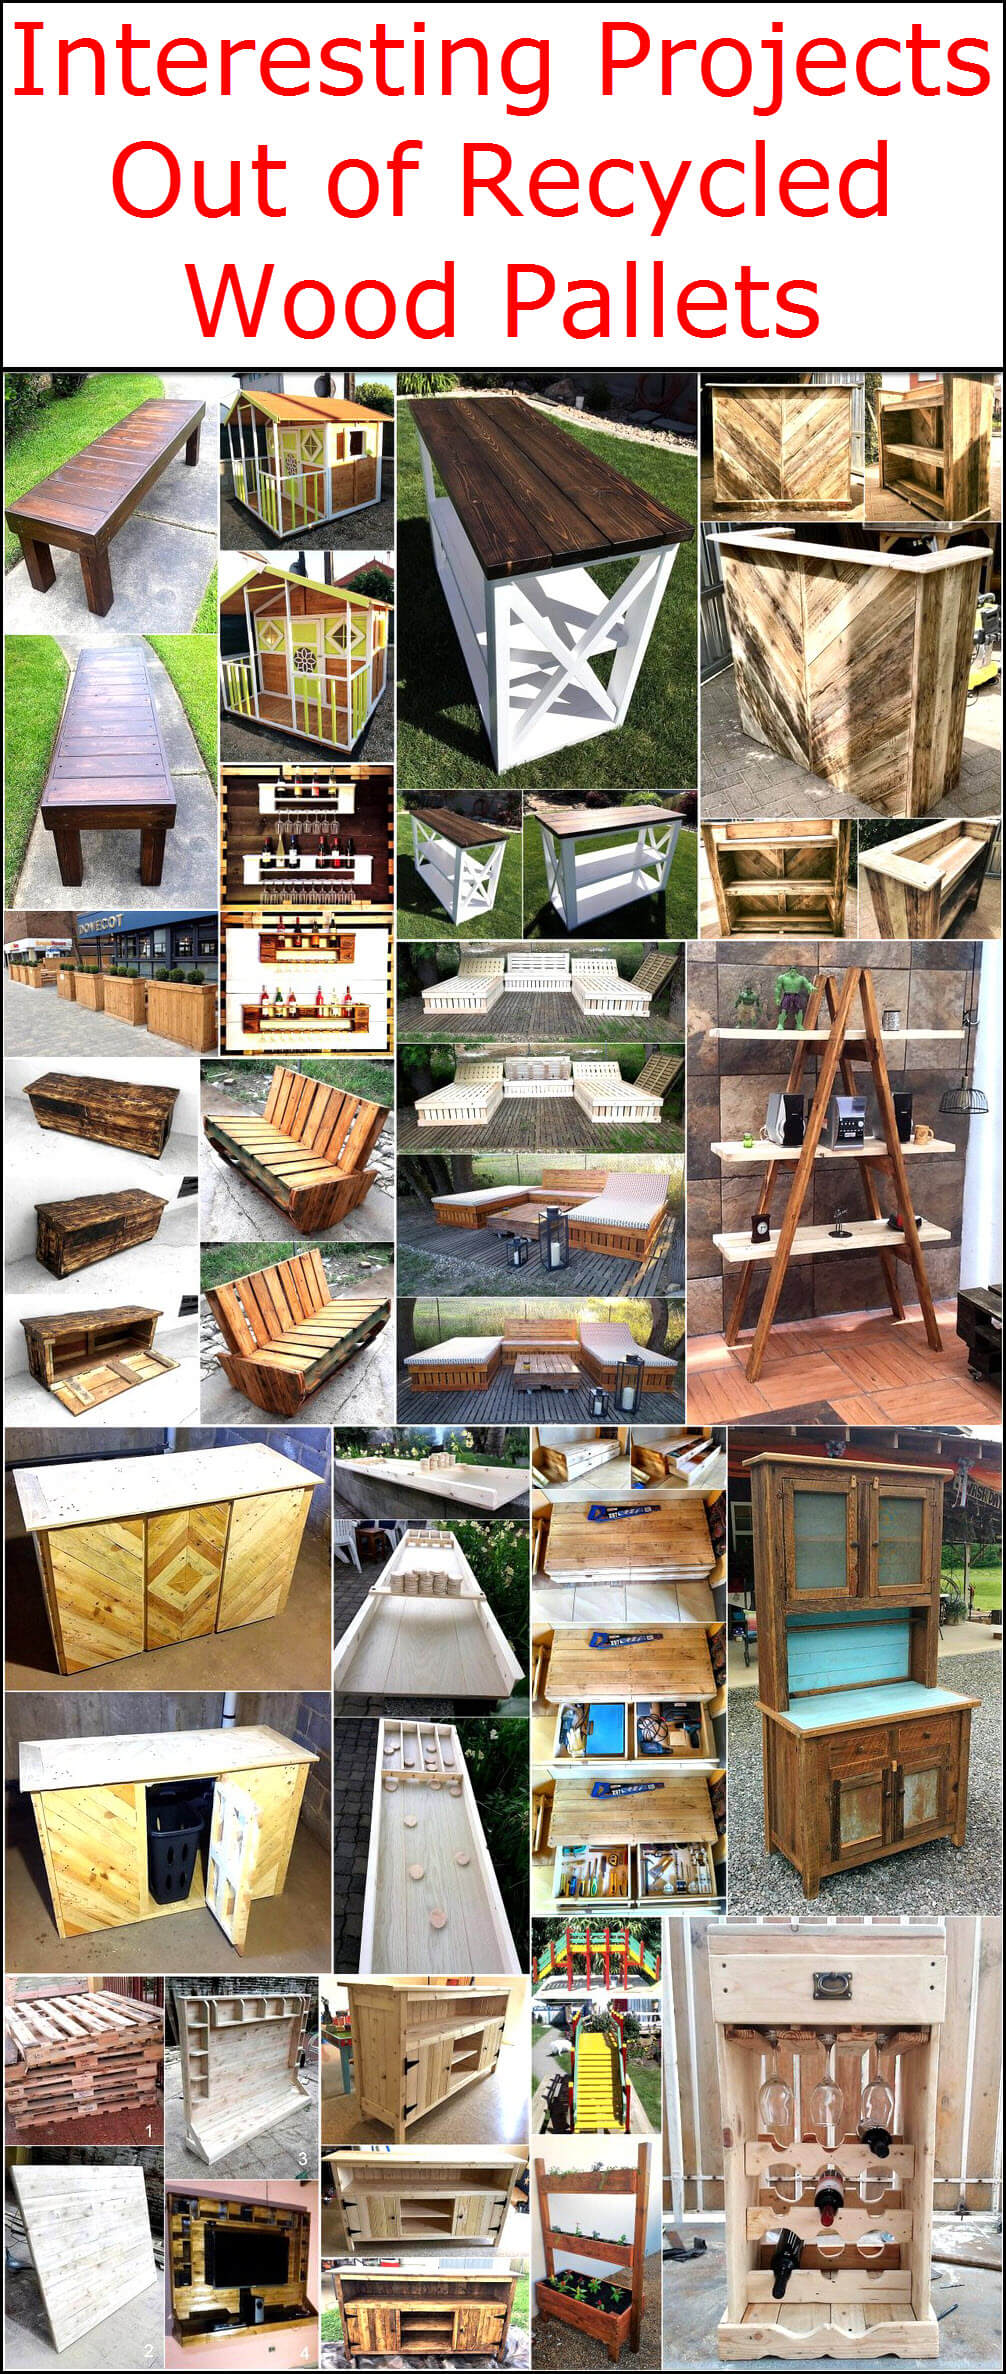 Interesting Projects Out of Recycled Wood Pallets